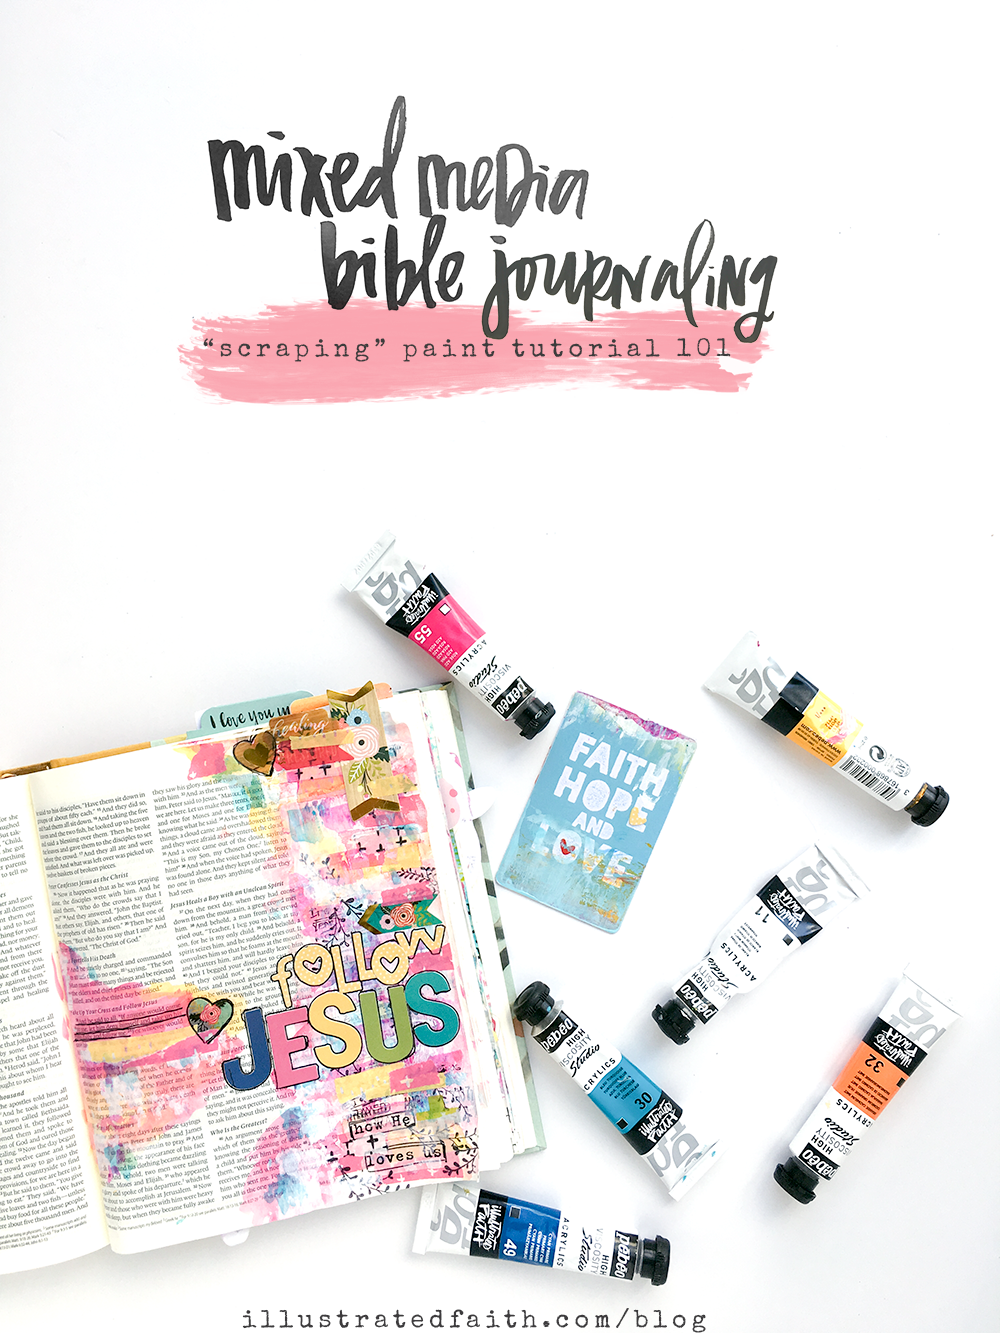 mixed media Bible journaling tutorial - scraping paint 101 by Heather Greenwood